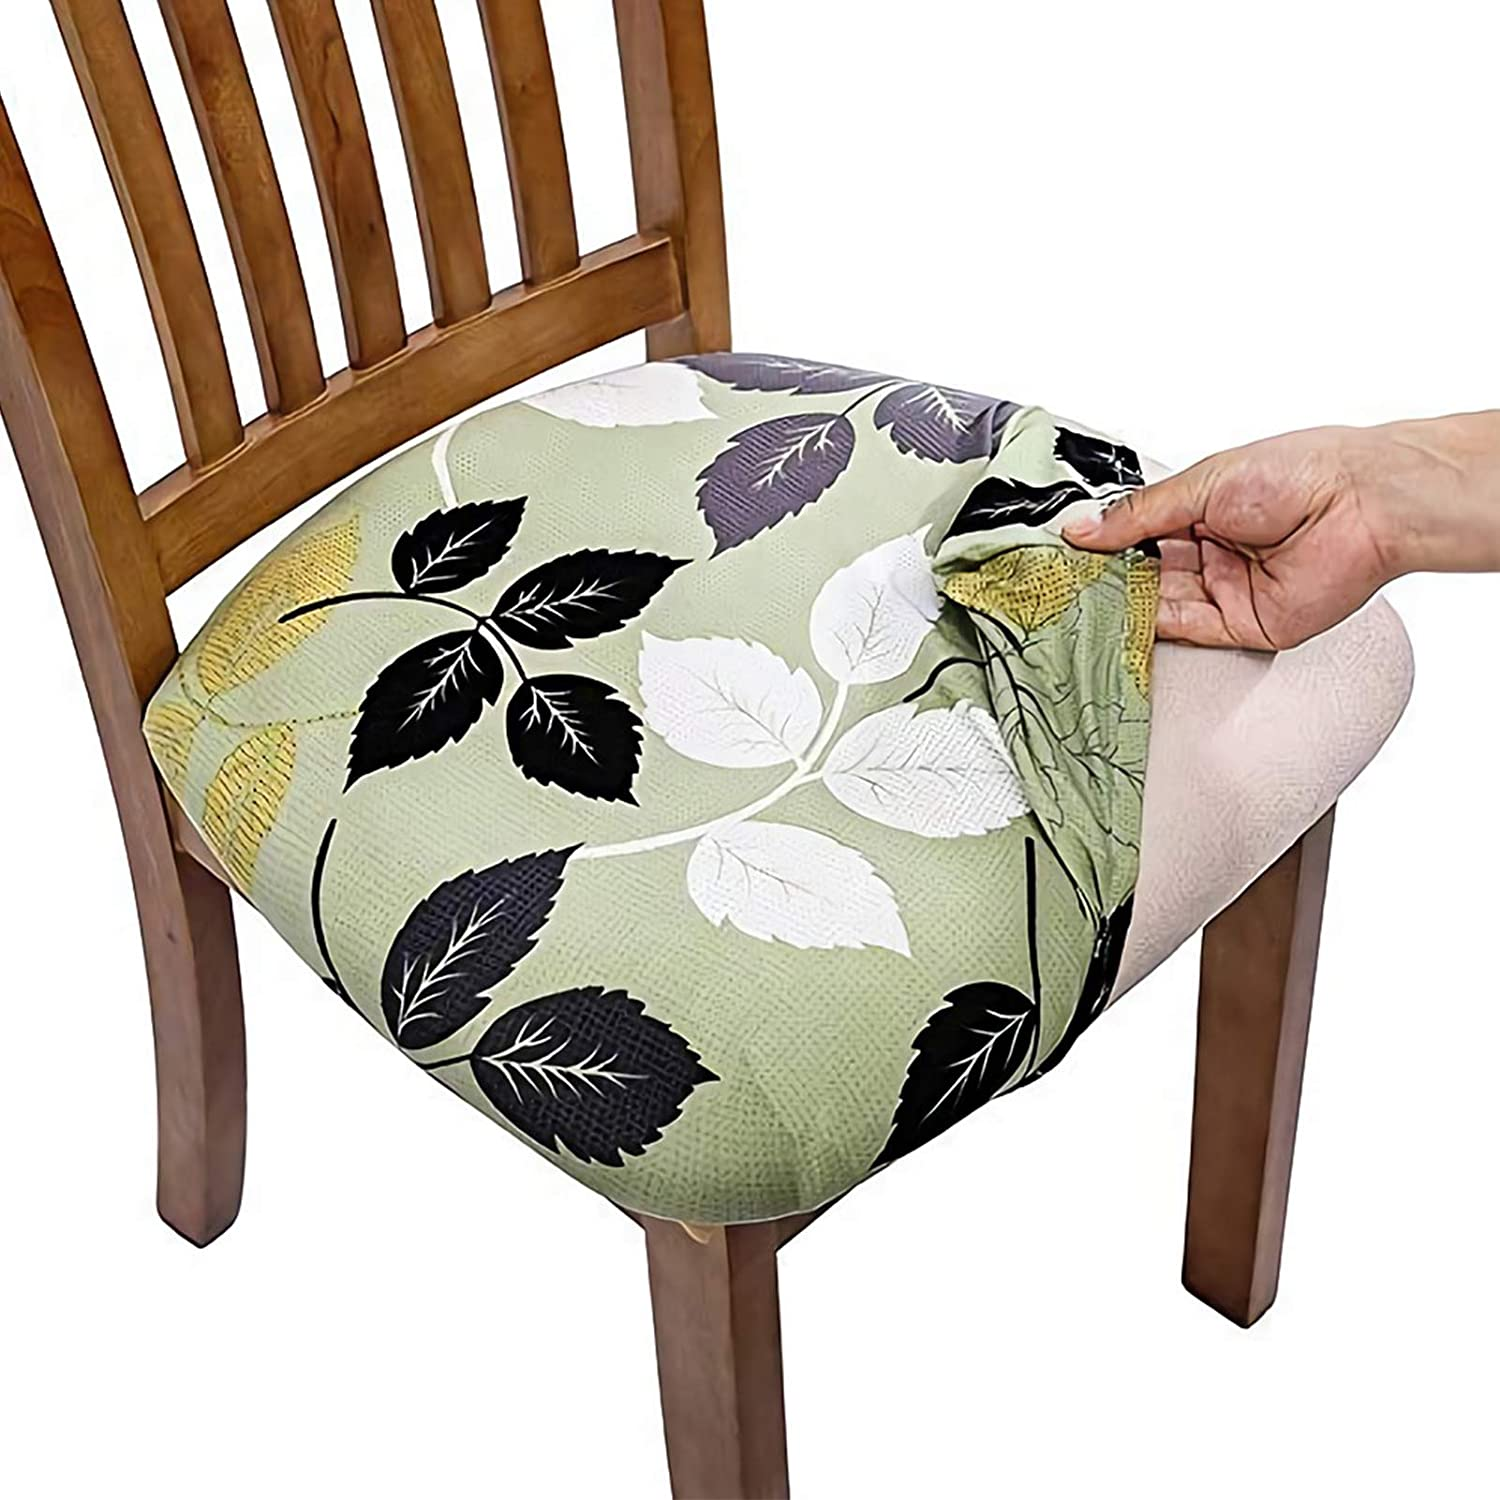 Stretch Dining Room Chair Covers Removable Washable Kitchen Chair Slipcover